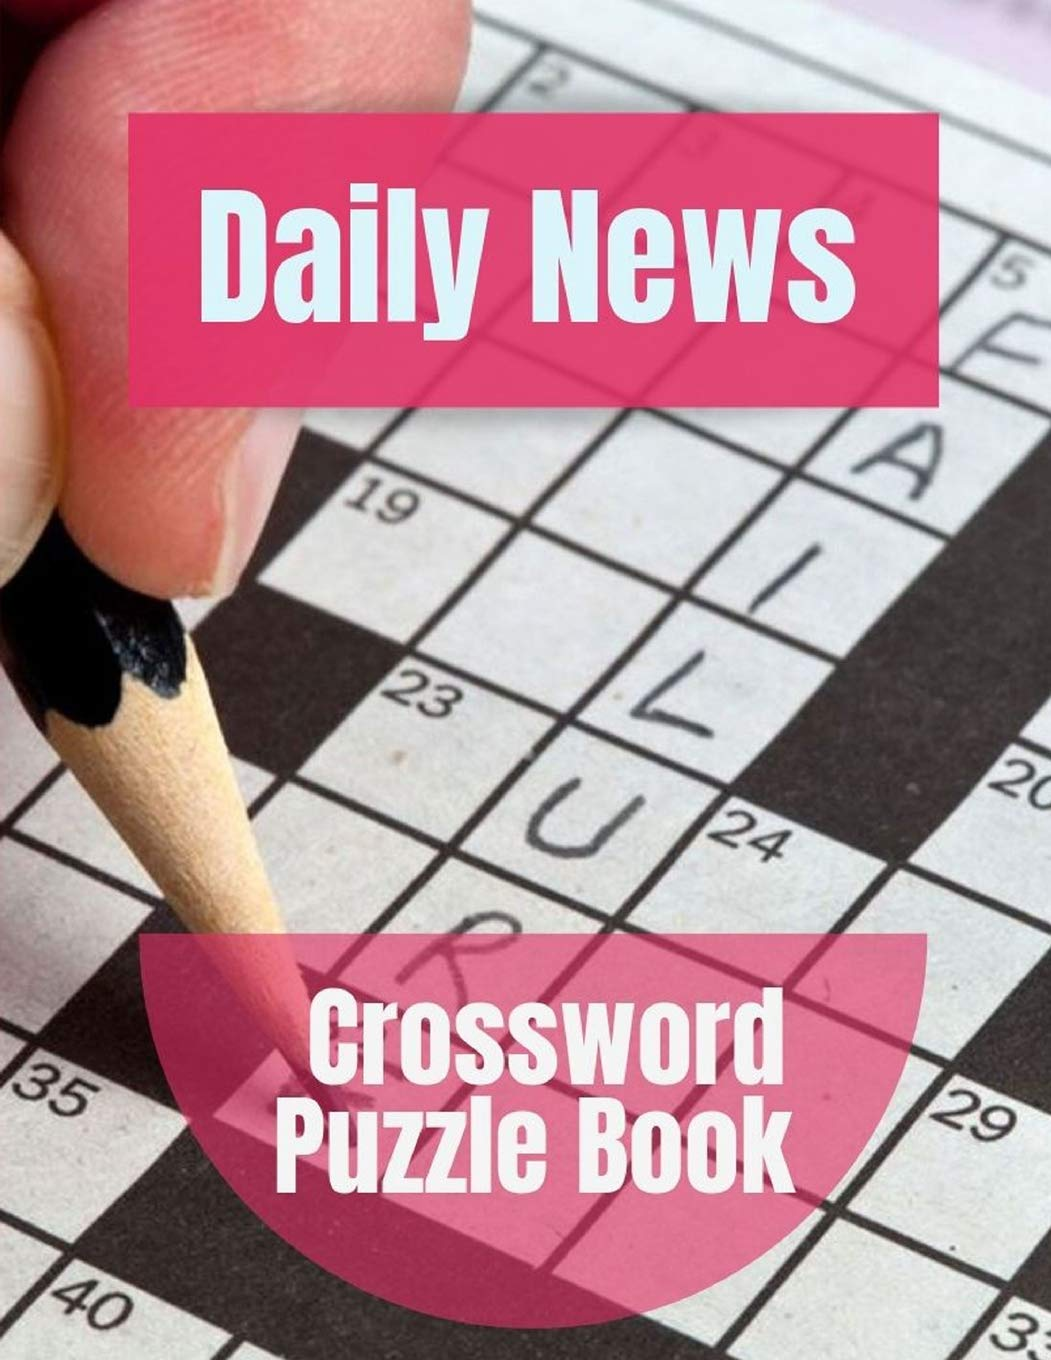 Daily News Crossword Puzzle Book Crosswords Puzzle Solver Puzzles To Challenge Your Brain Reproducible Worksheets For Classroom Use Kids Activities Books Maiasea Jatina B 9781693959776 Amazon Com Books